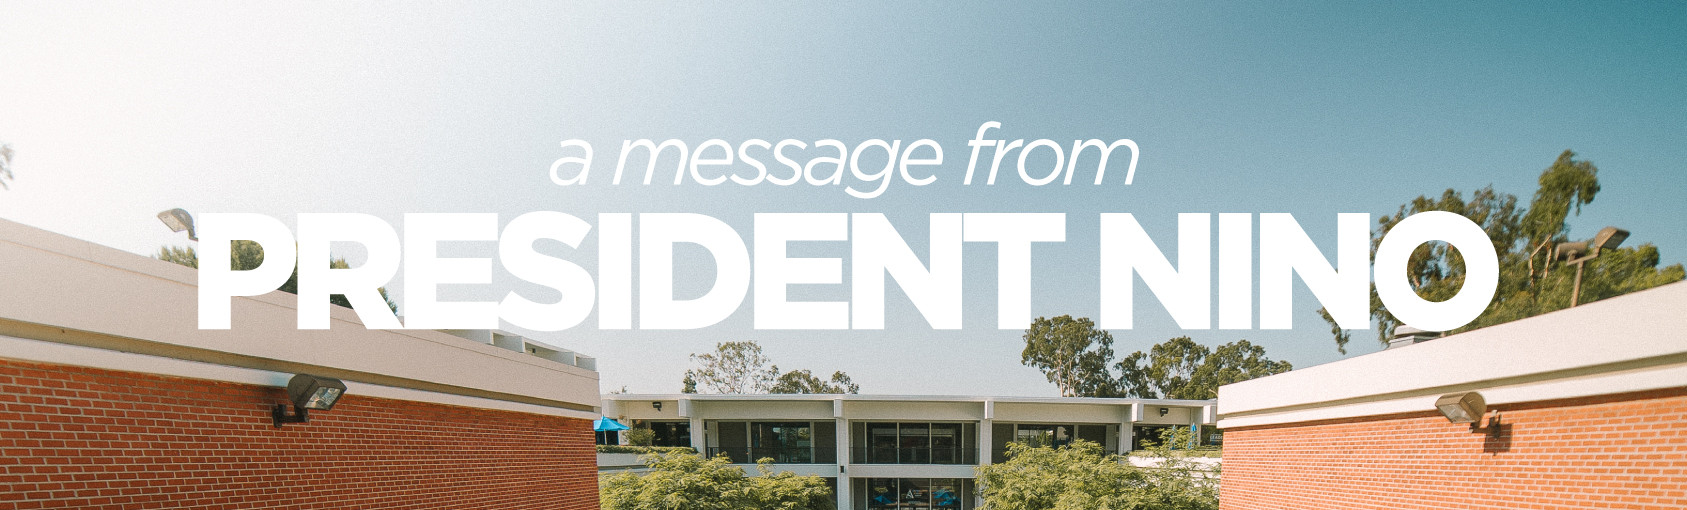 A Message from President Nino banner